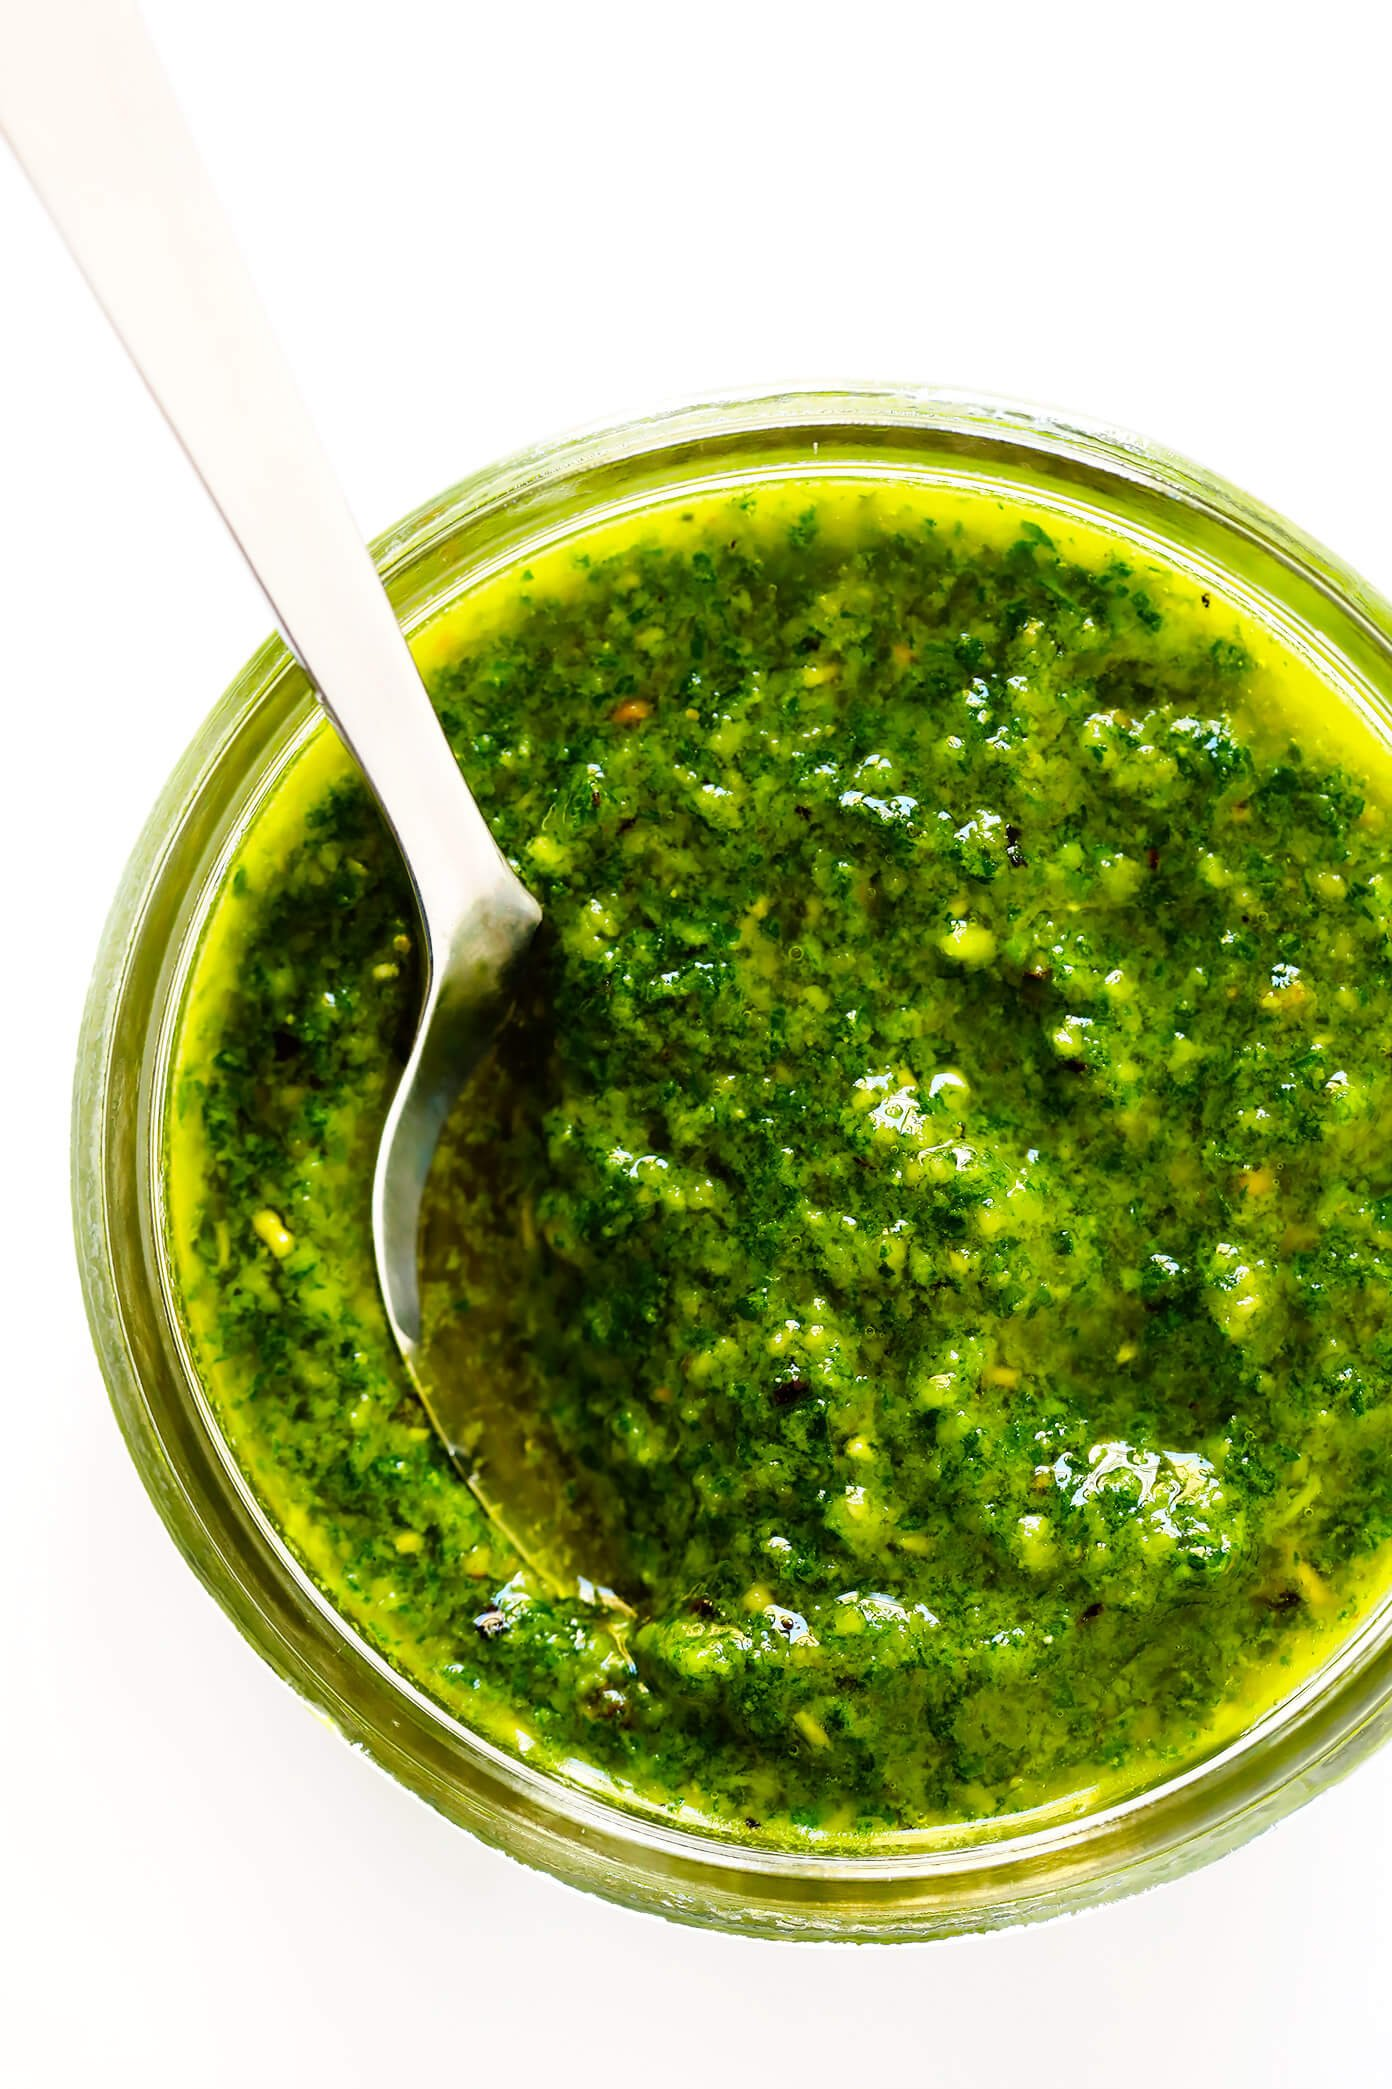 How To Make Pesto | Basil Pesto Recipe